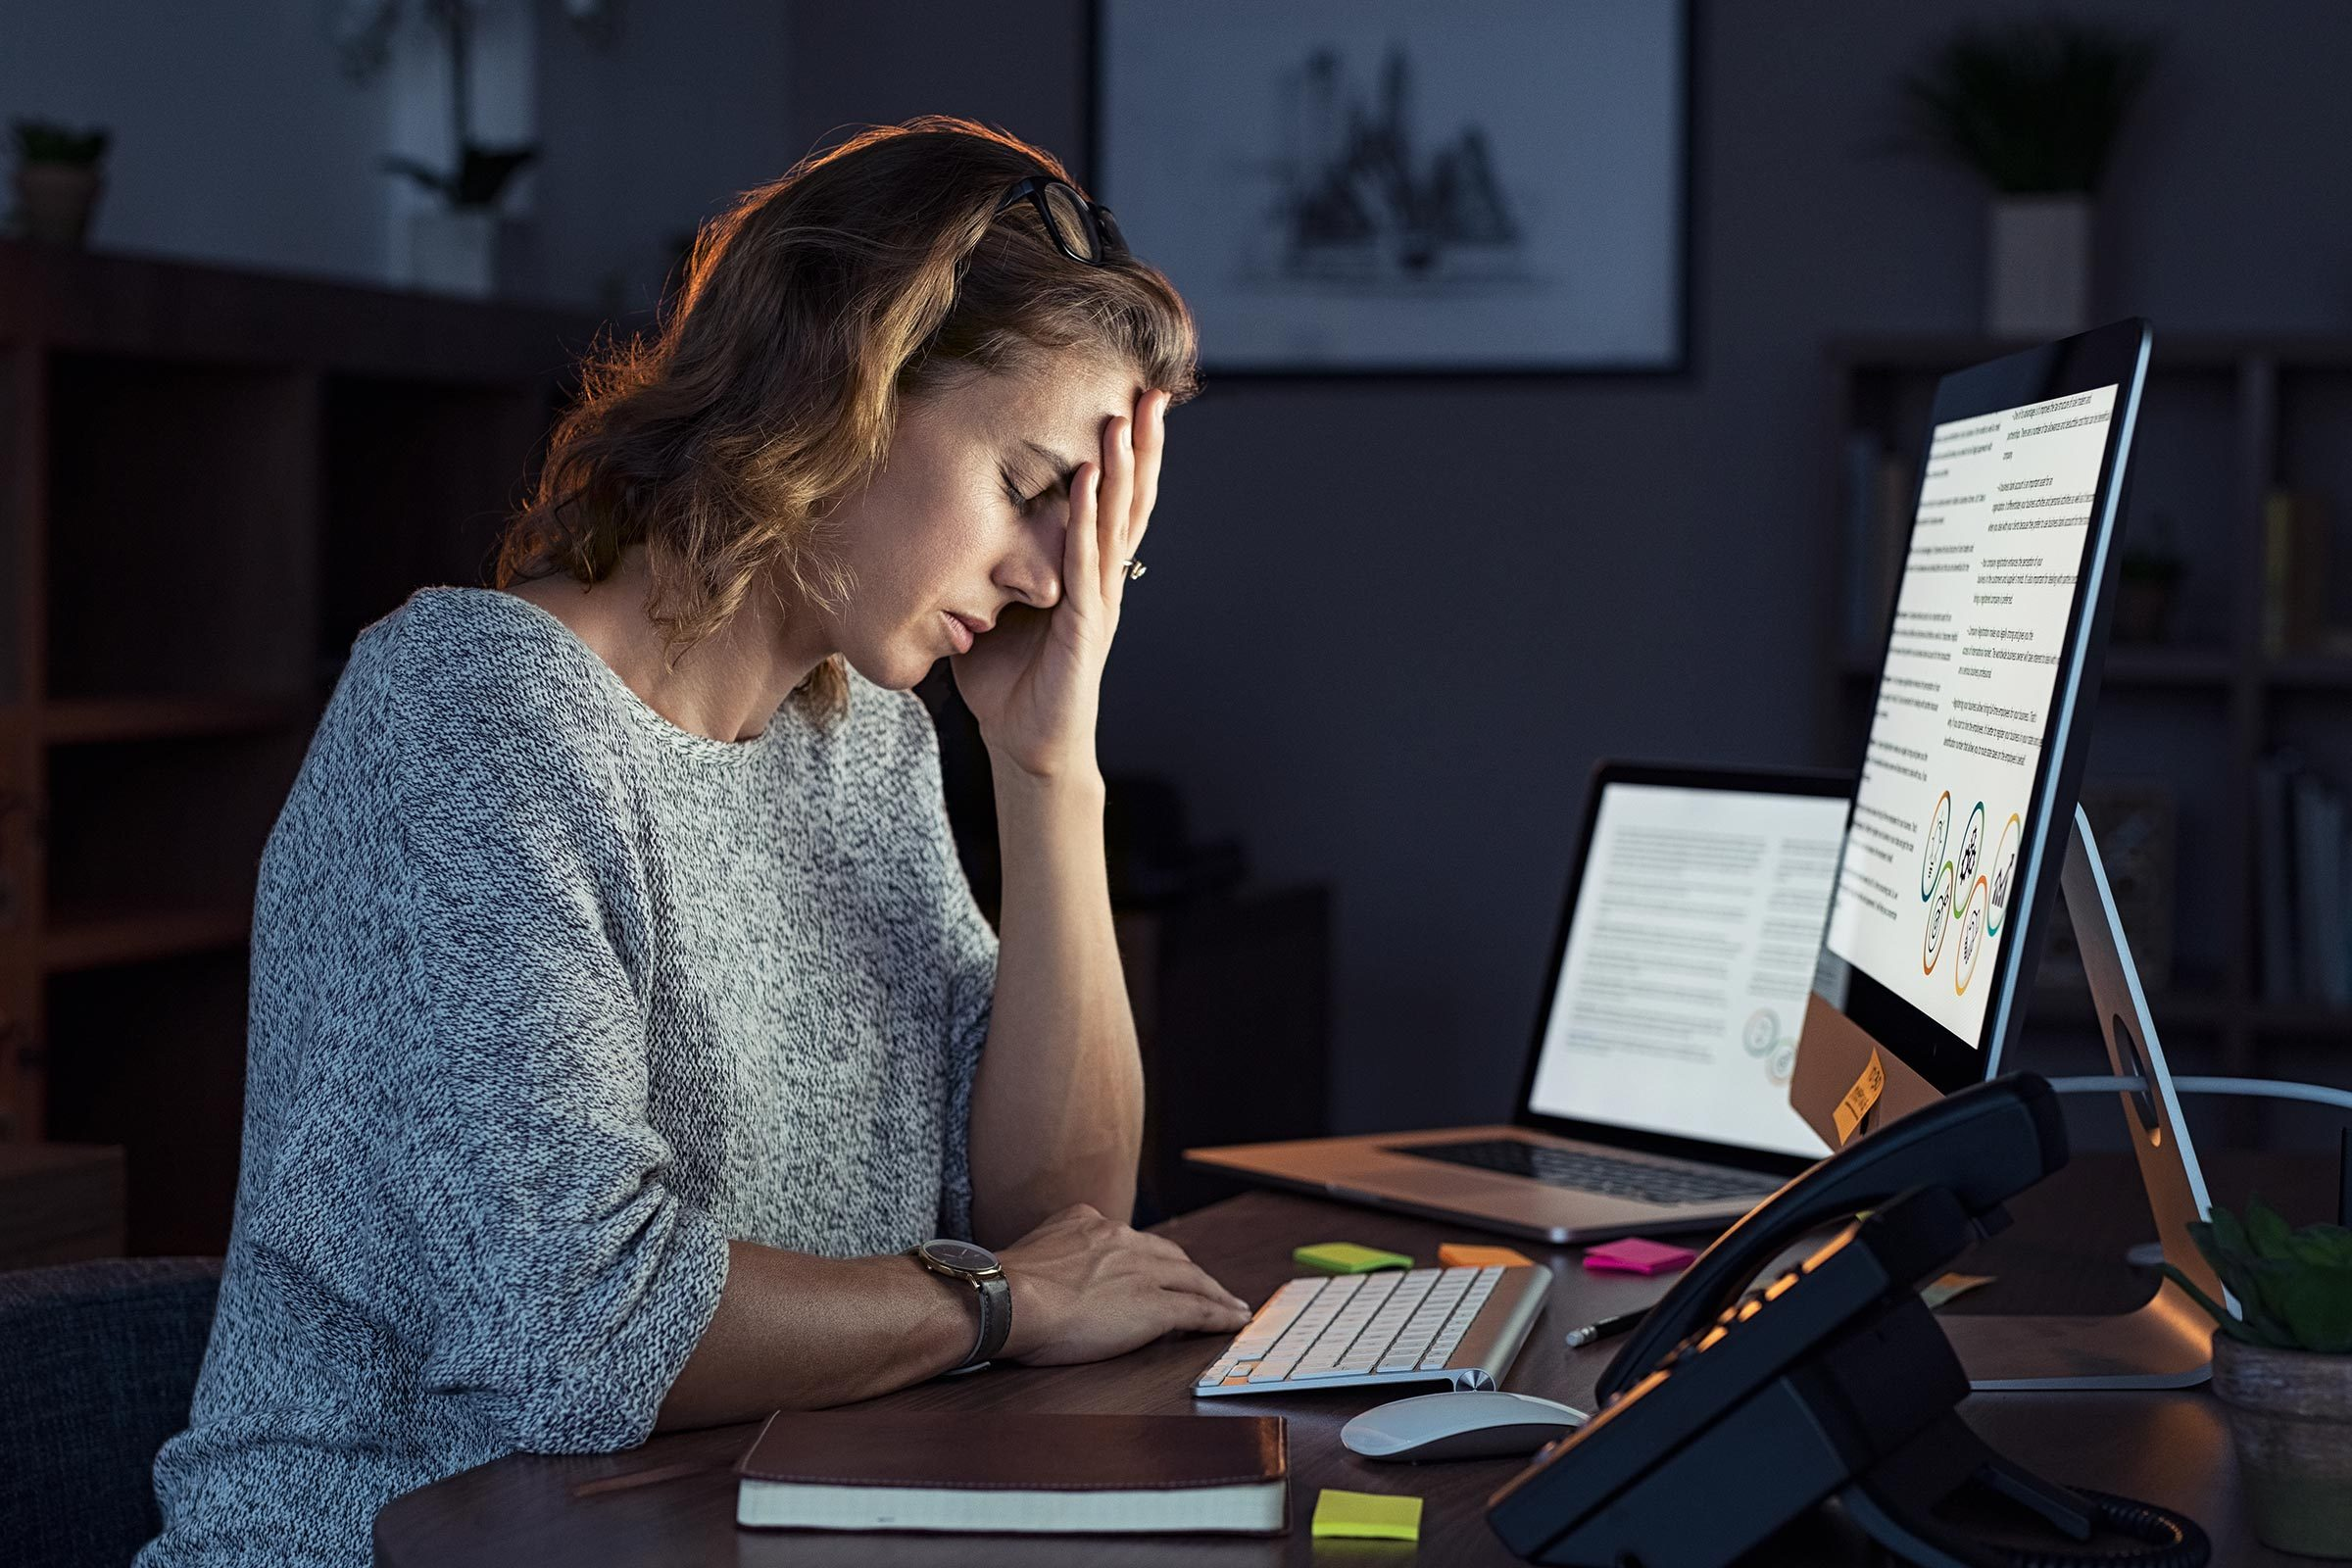 stressed woman work computer